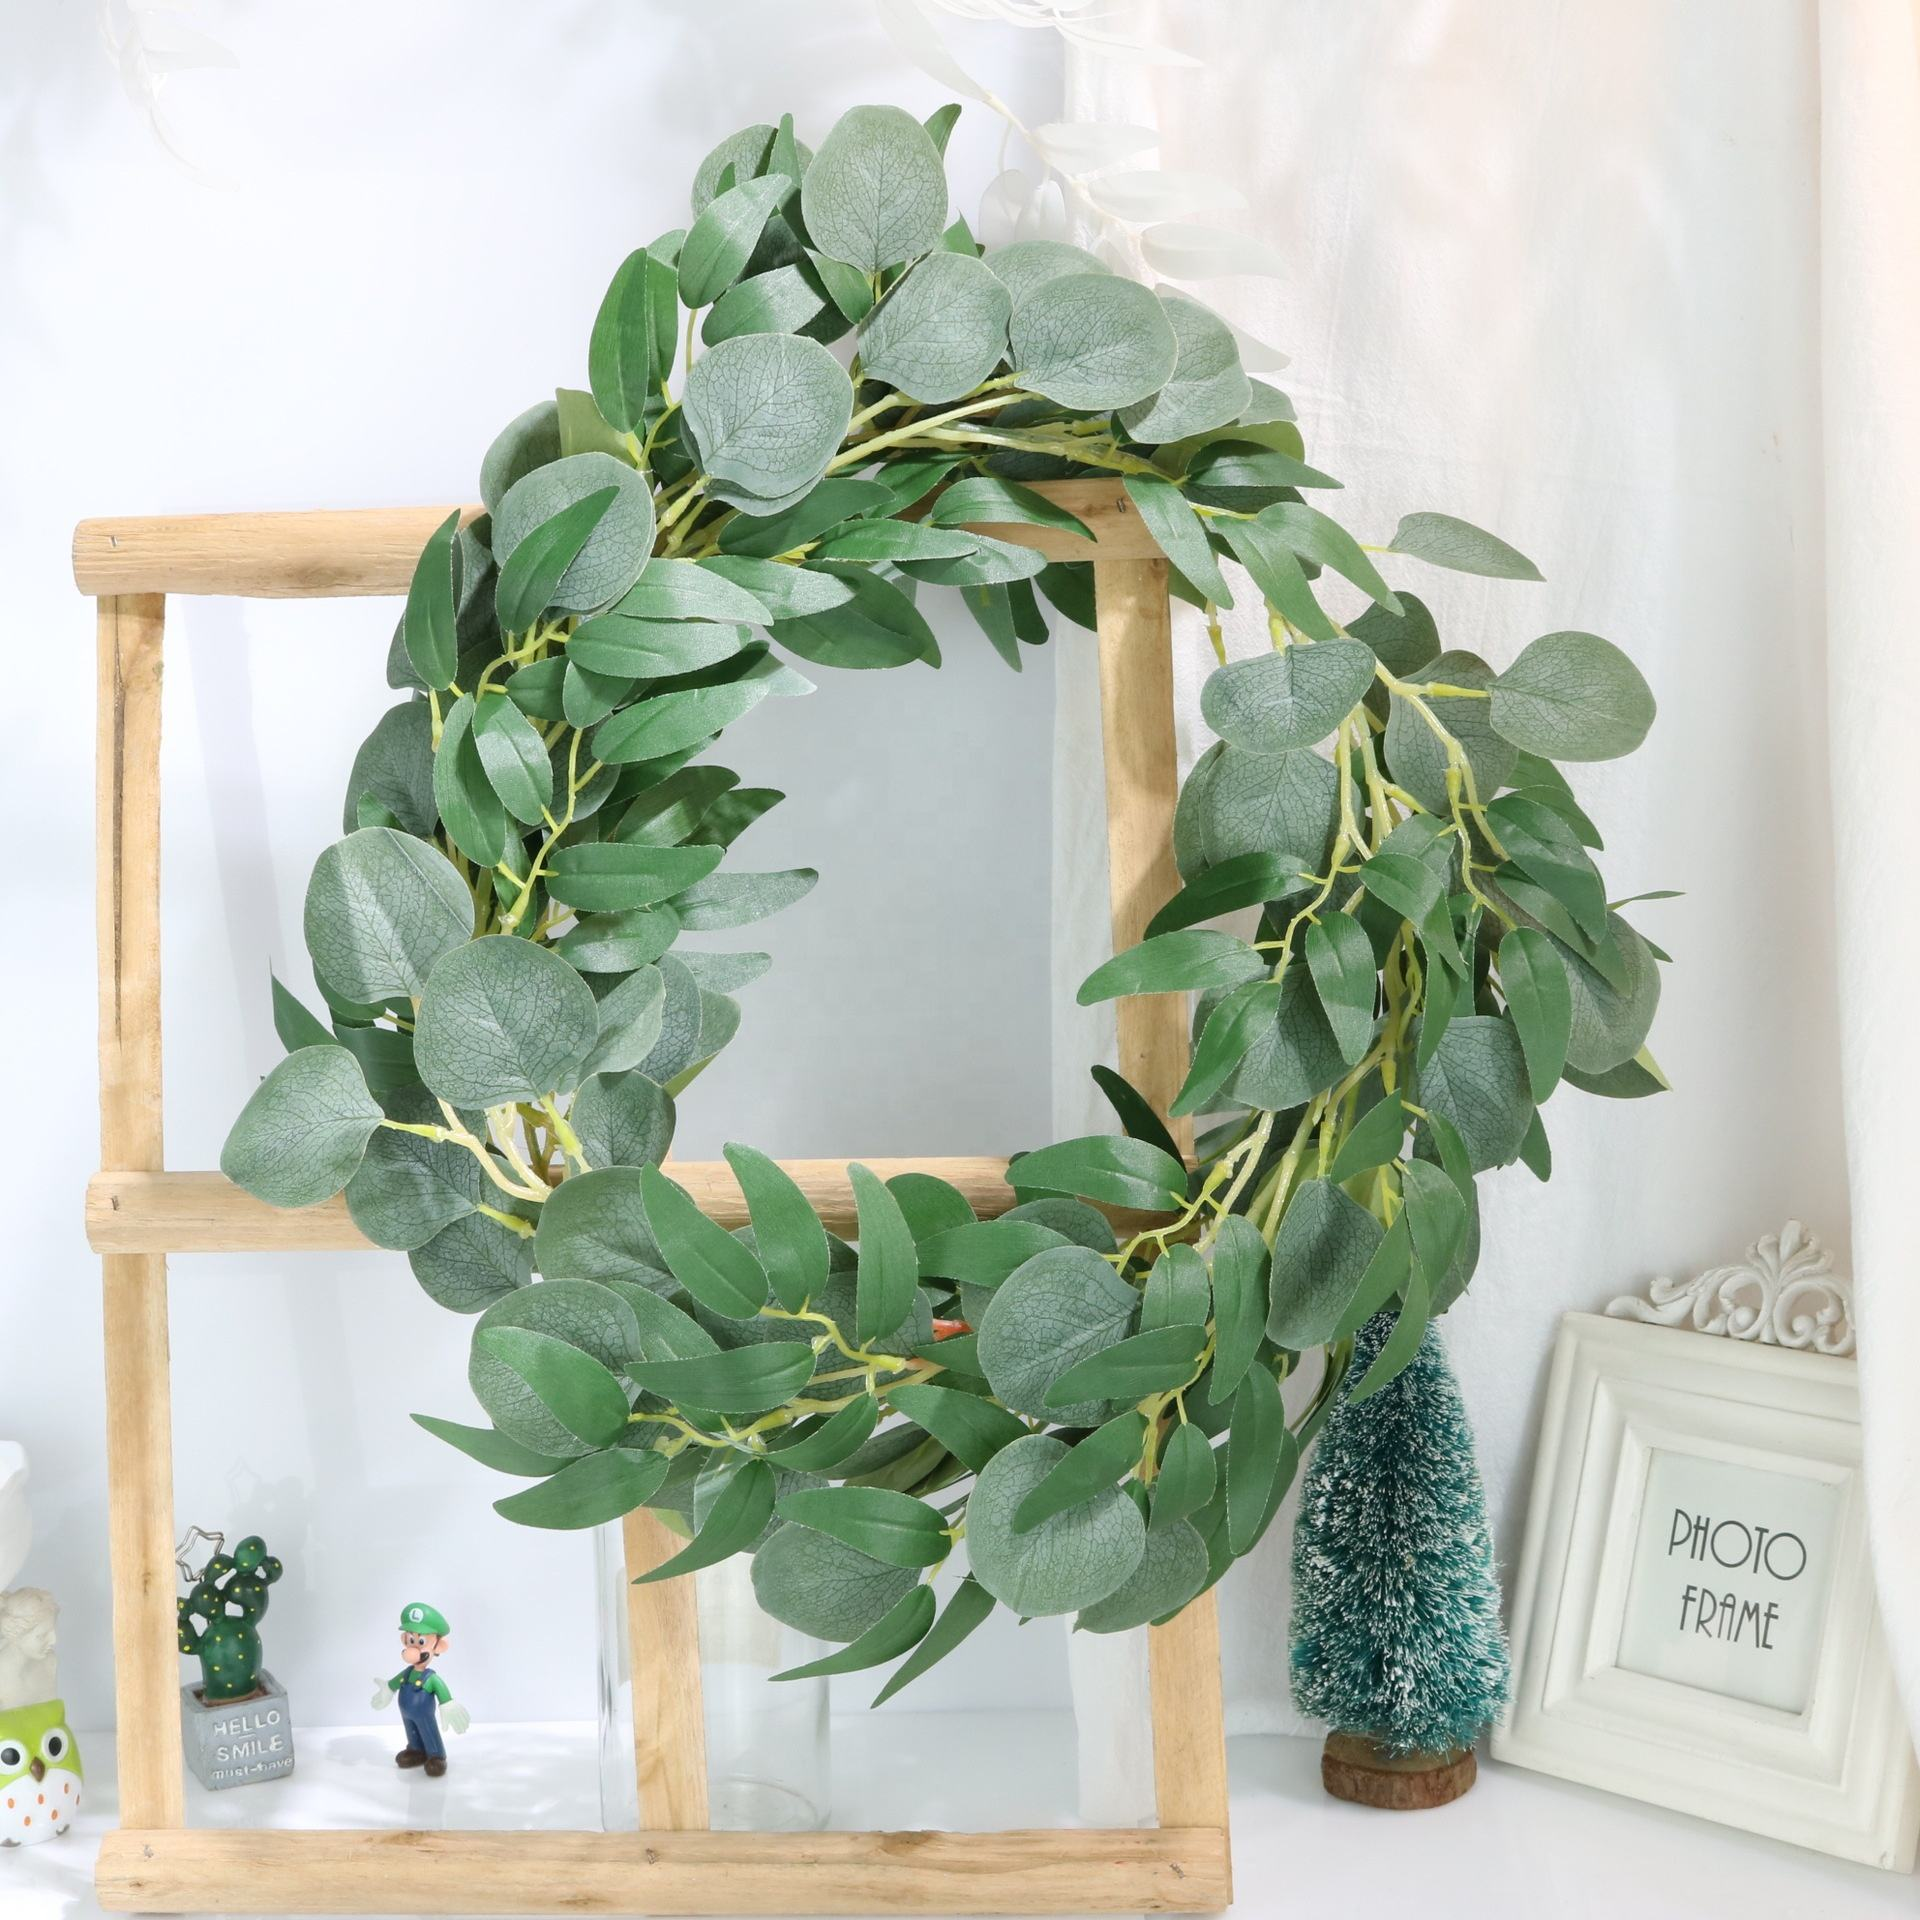 OurWarm 2M 1.7M Artificial Willow葉Eucalyptus Leaves Home Birthday Party Wedding DecorでBulk